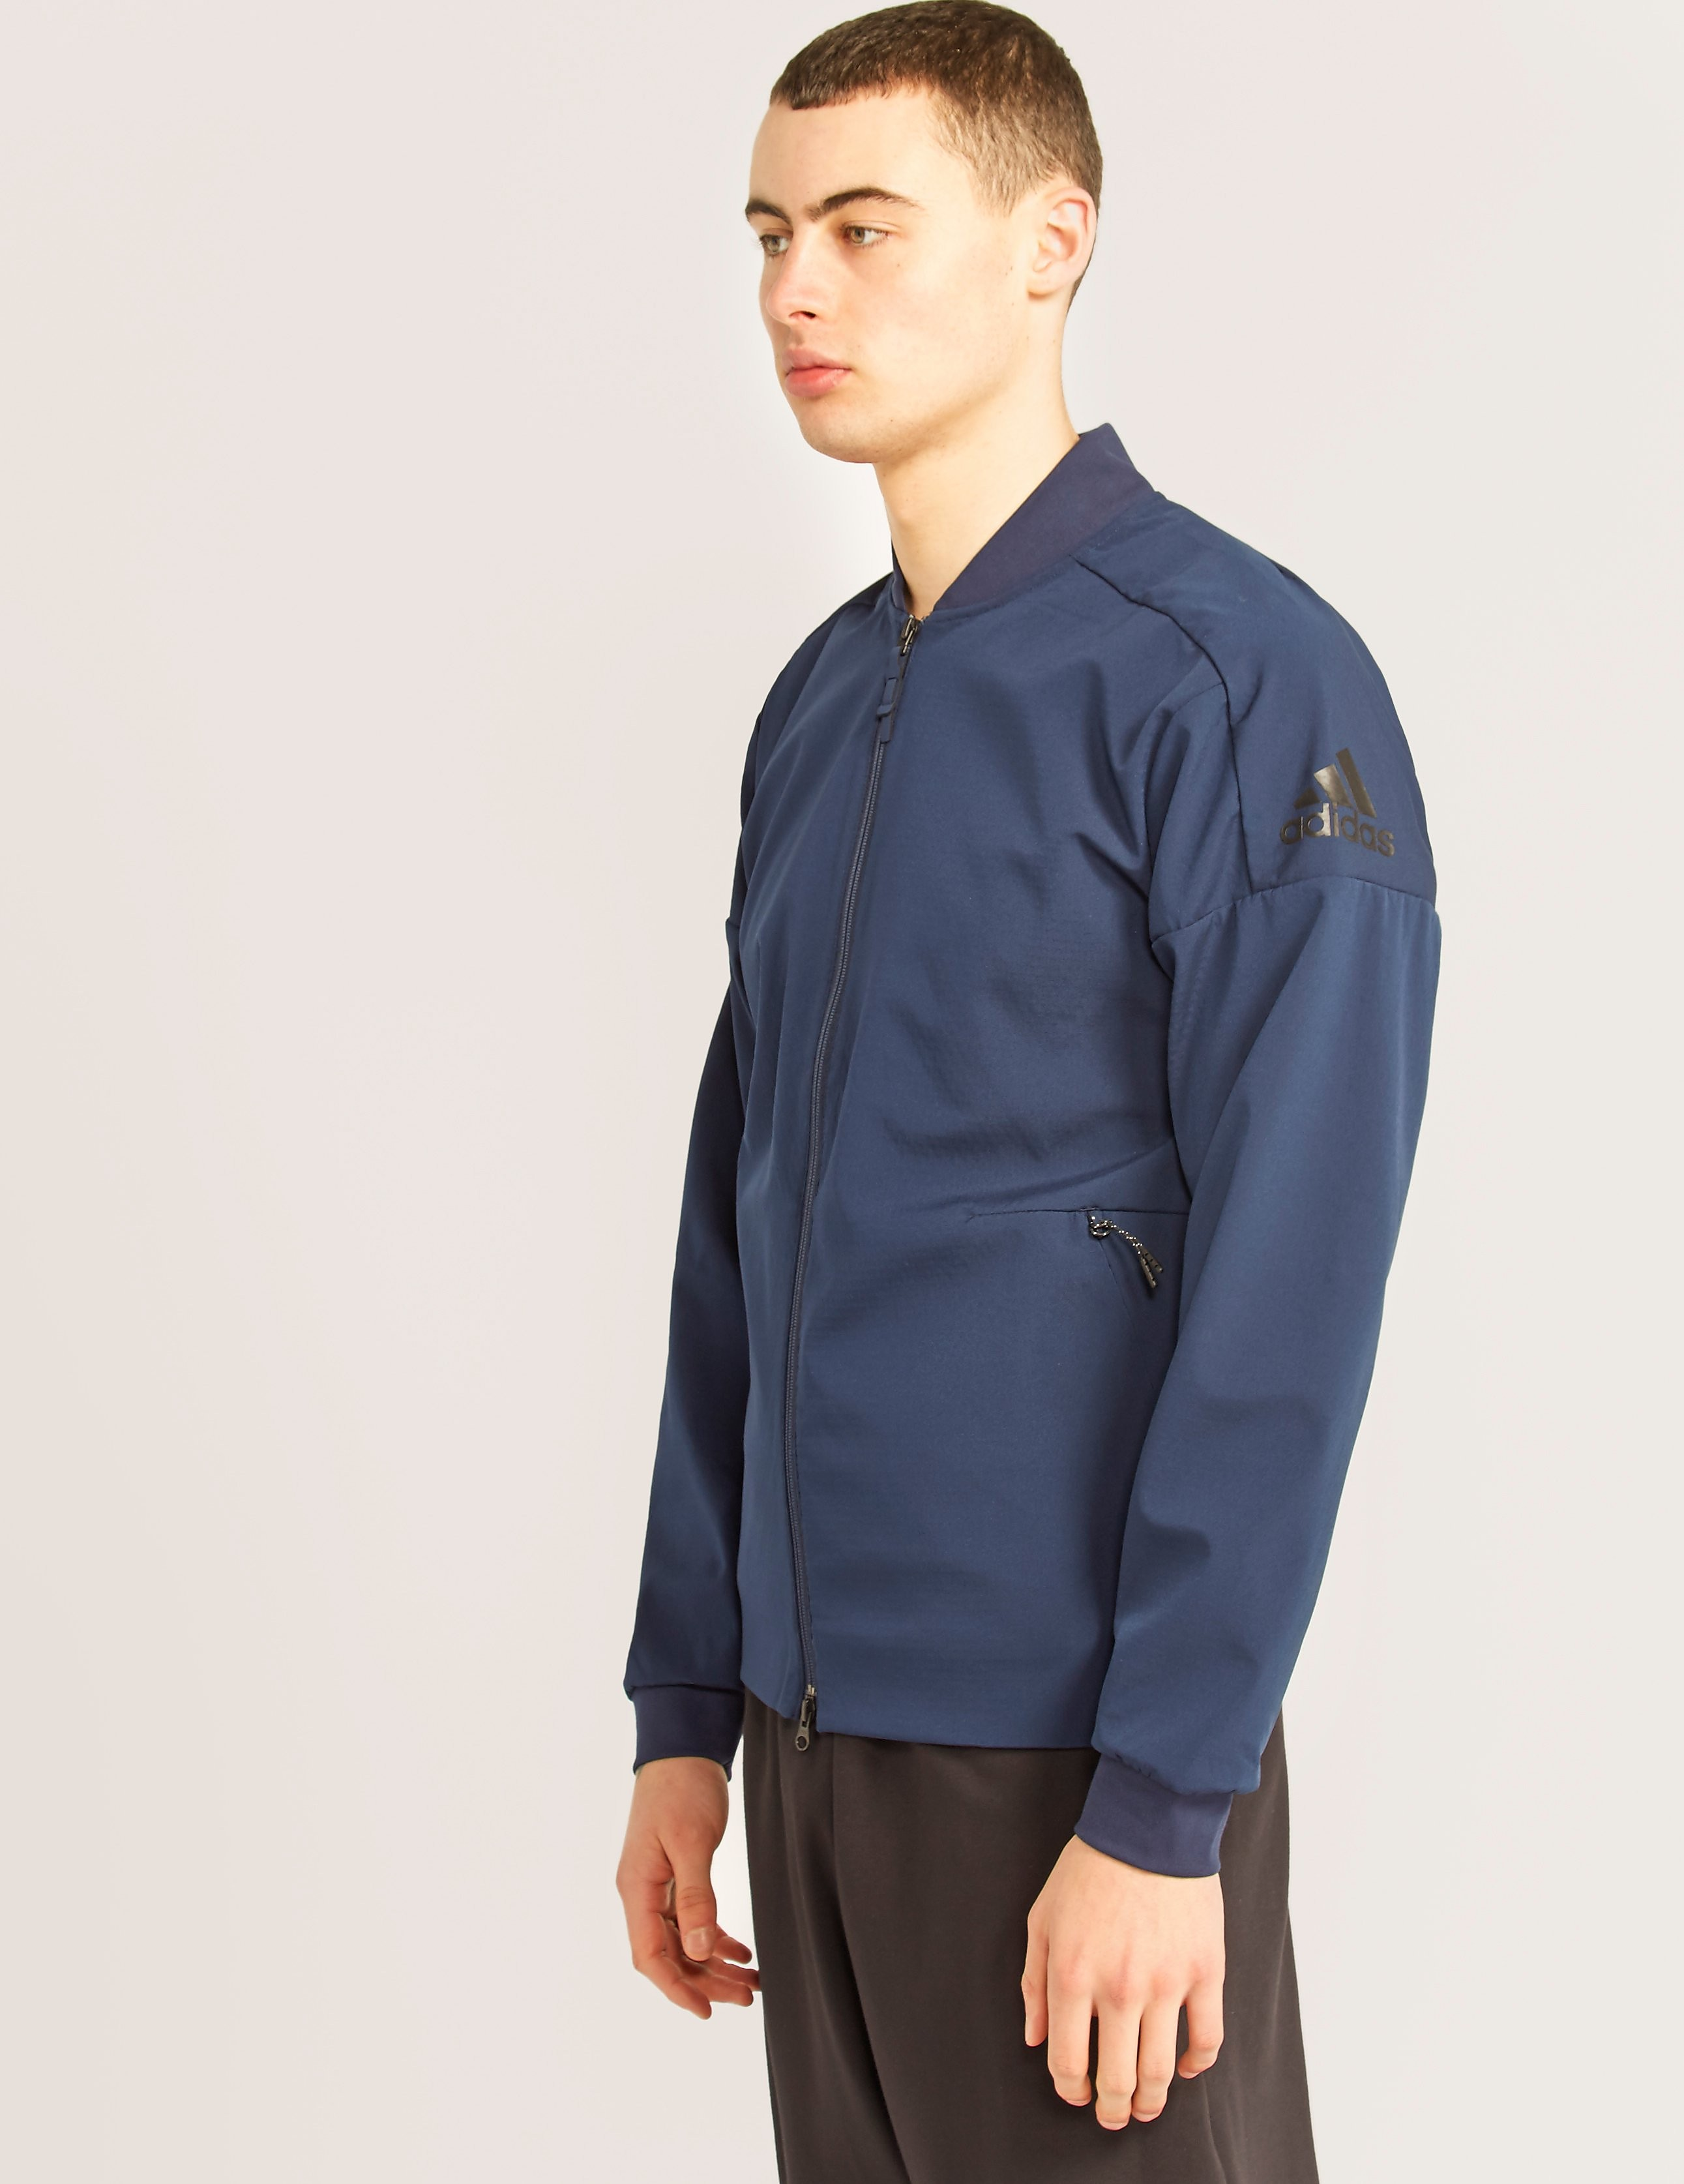 adidas Originals Z.N.E Woven Track Top